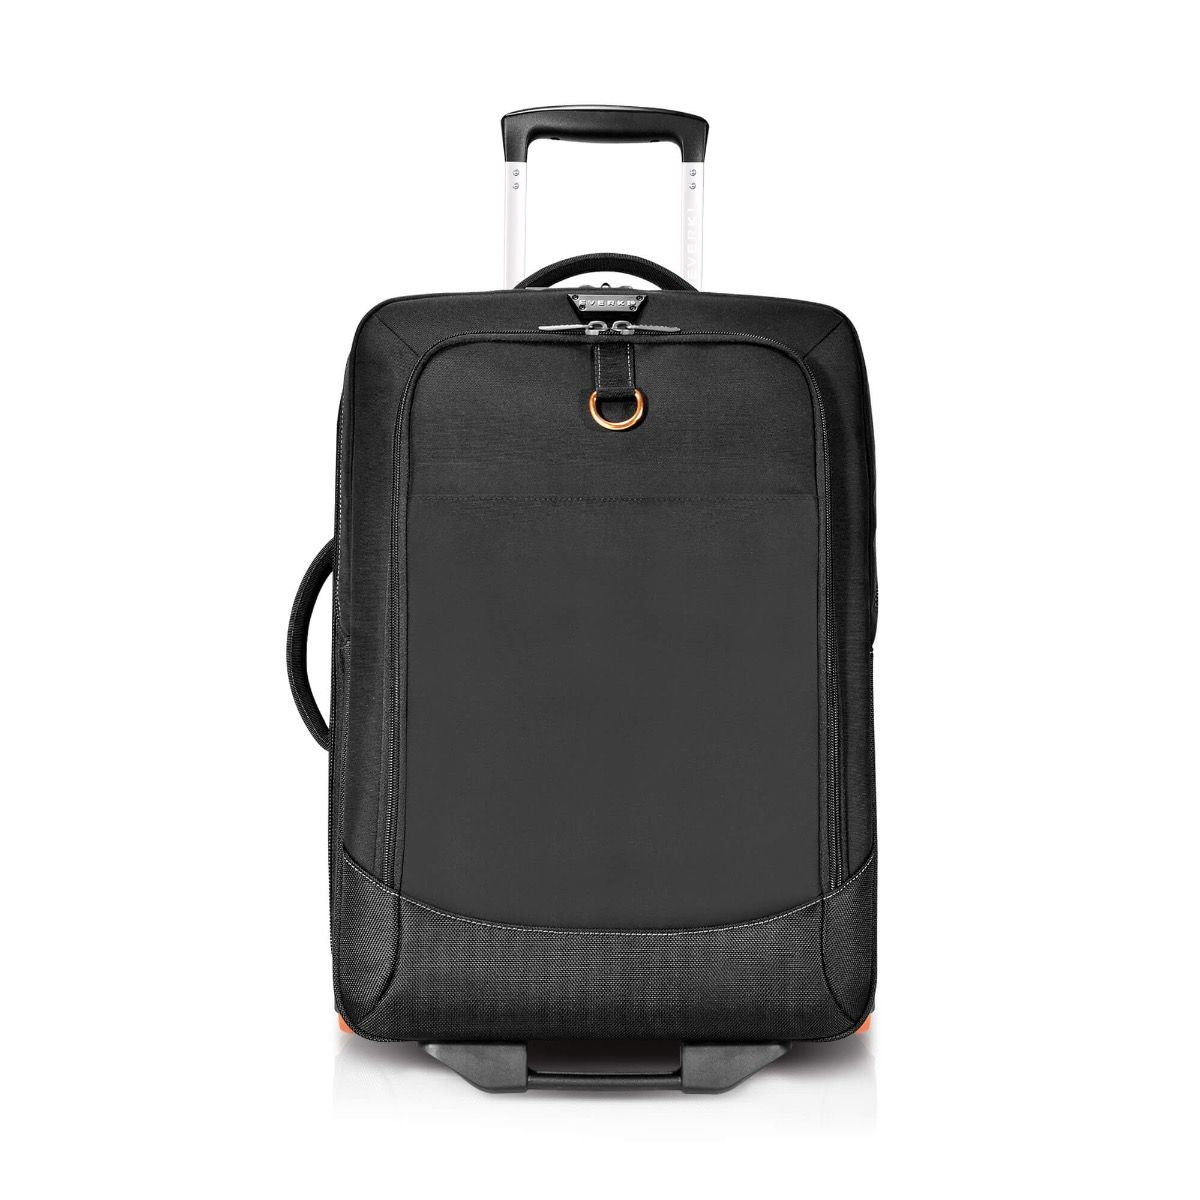 EVERKI Titan 18 Inch Laptop Trolley